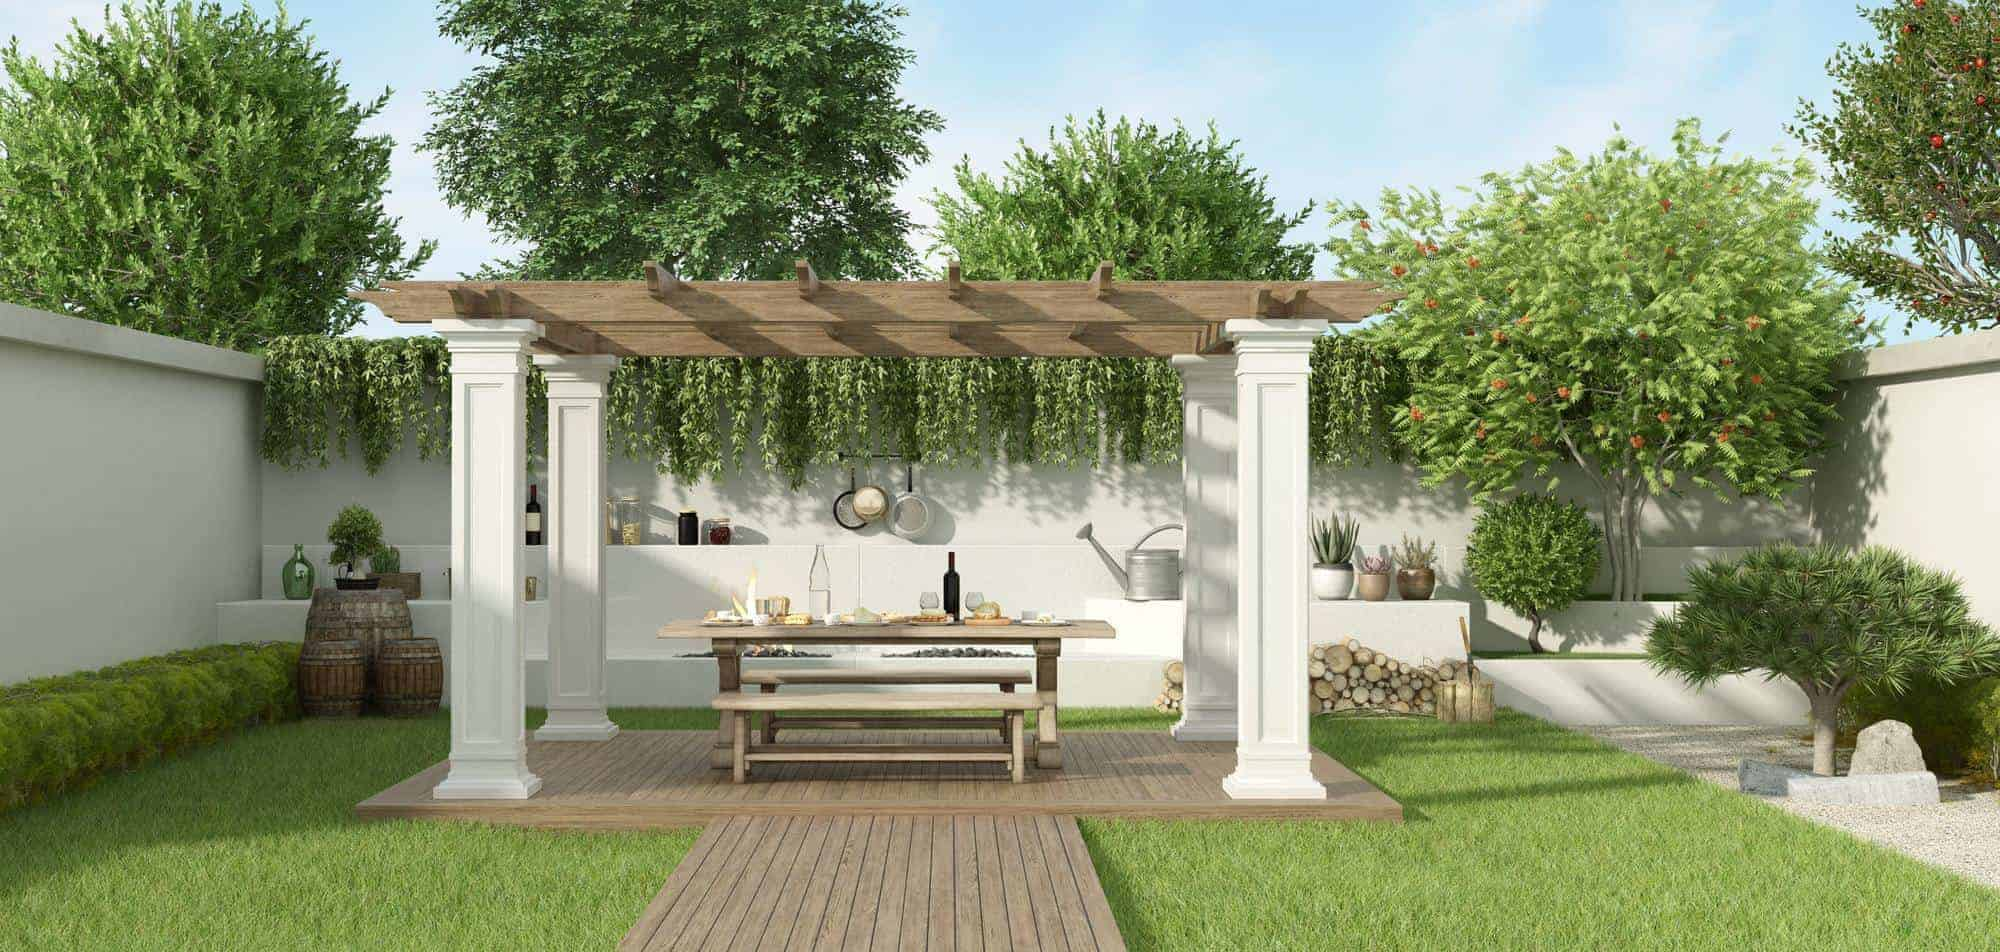 Lush garden with table set under a gazebo and barbecue on background